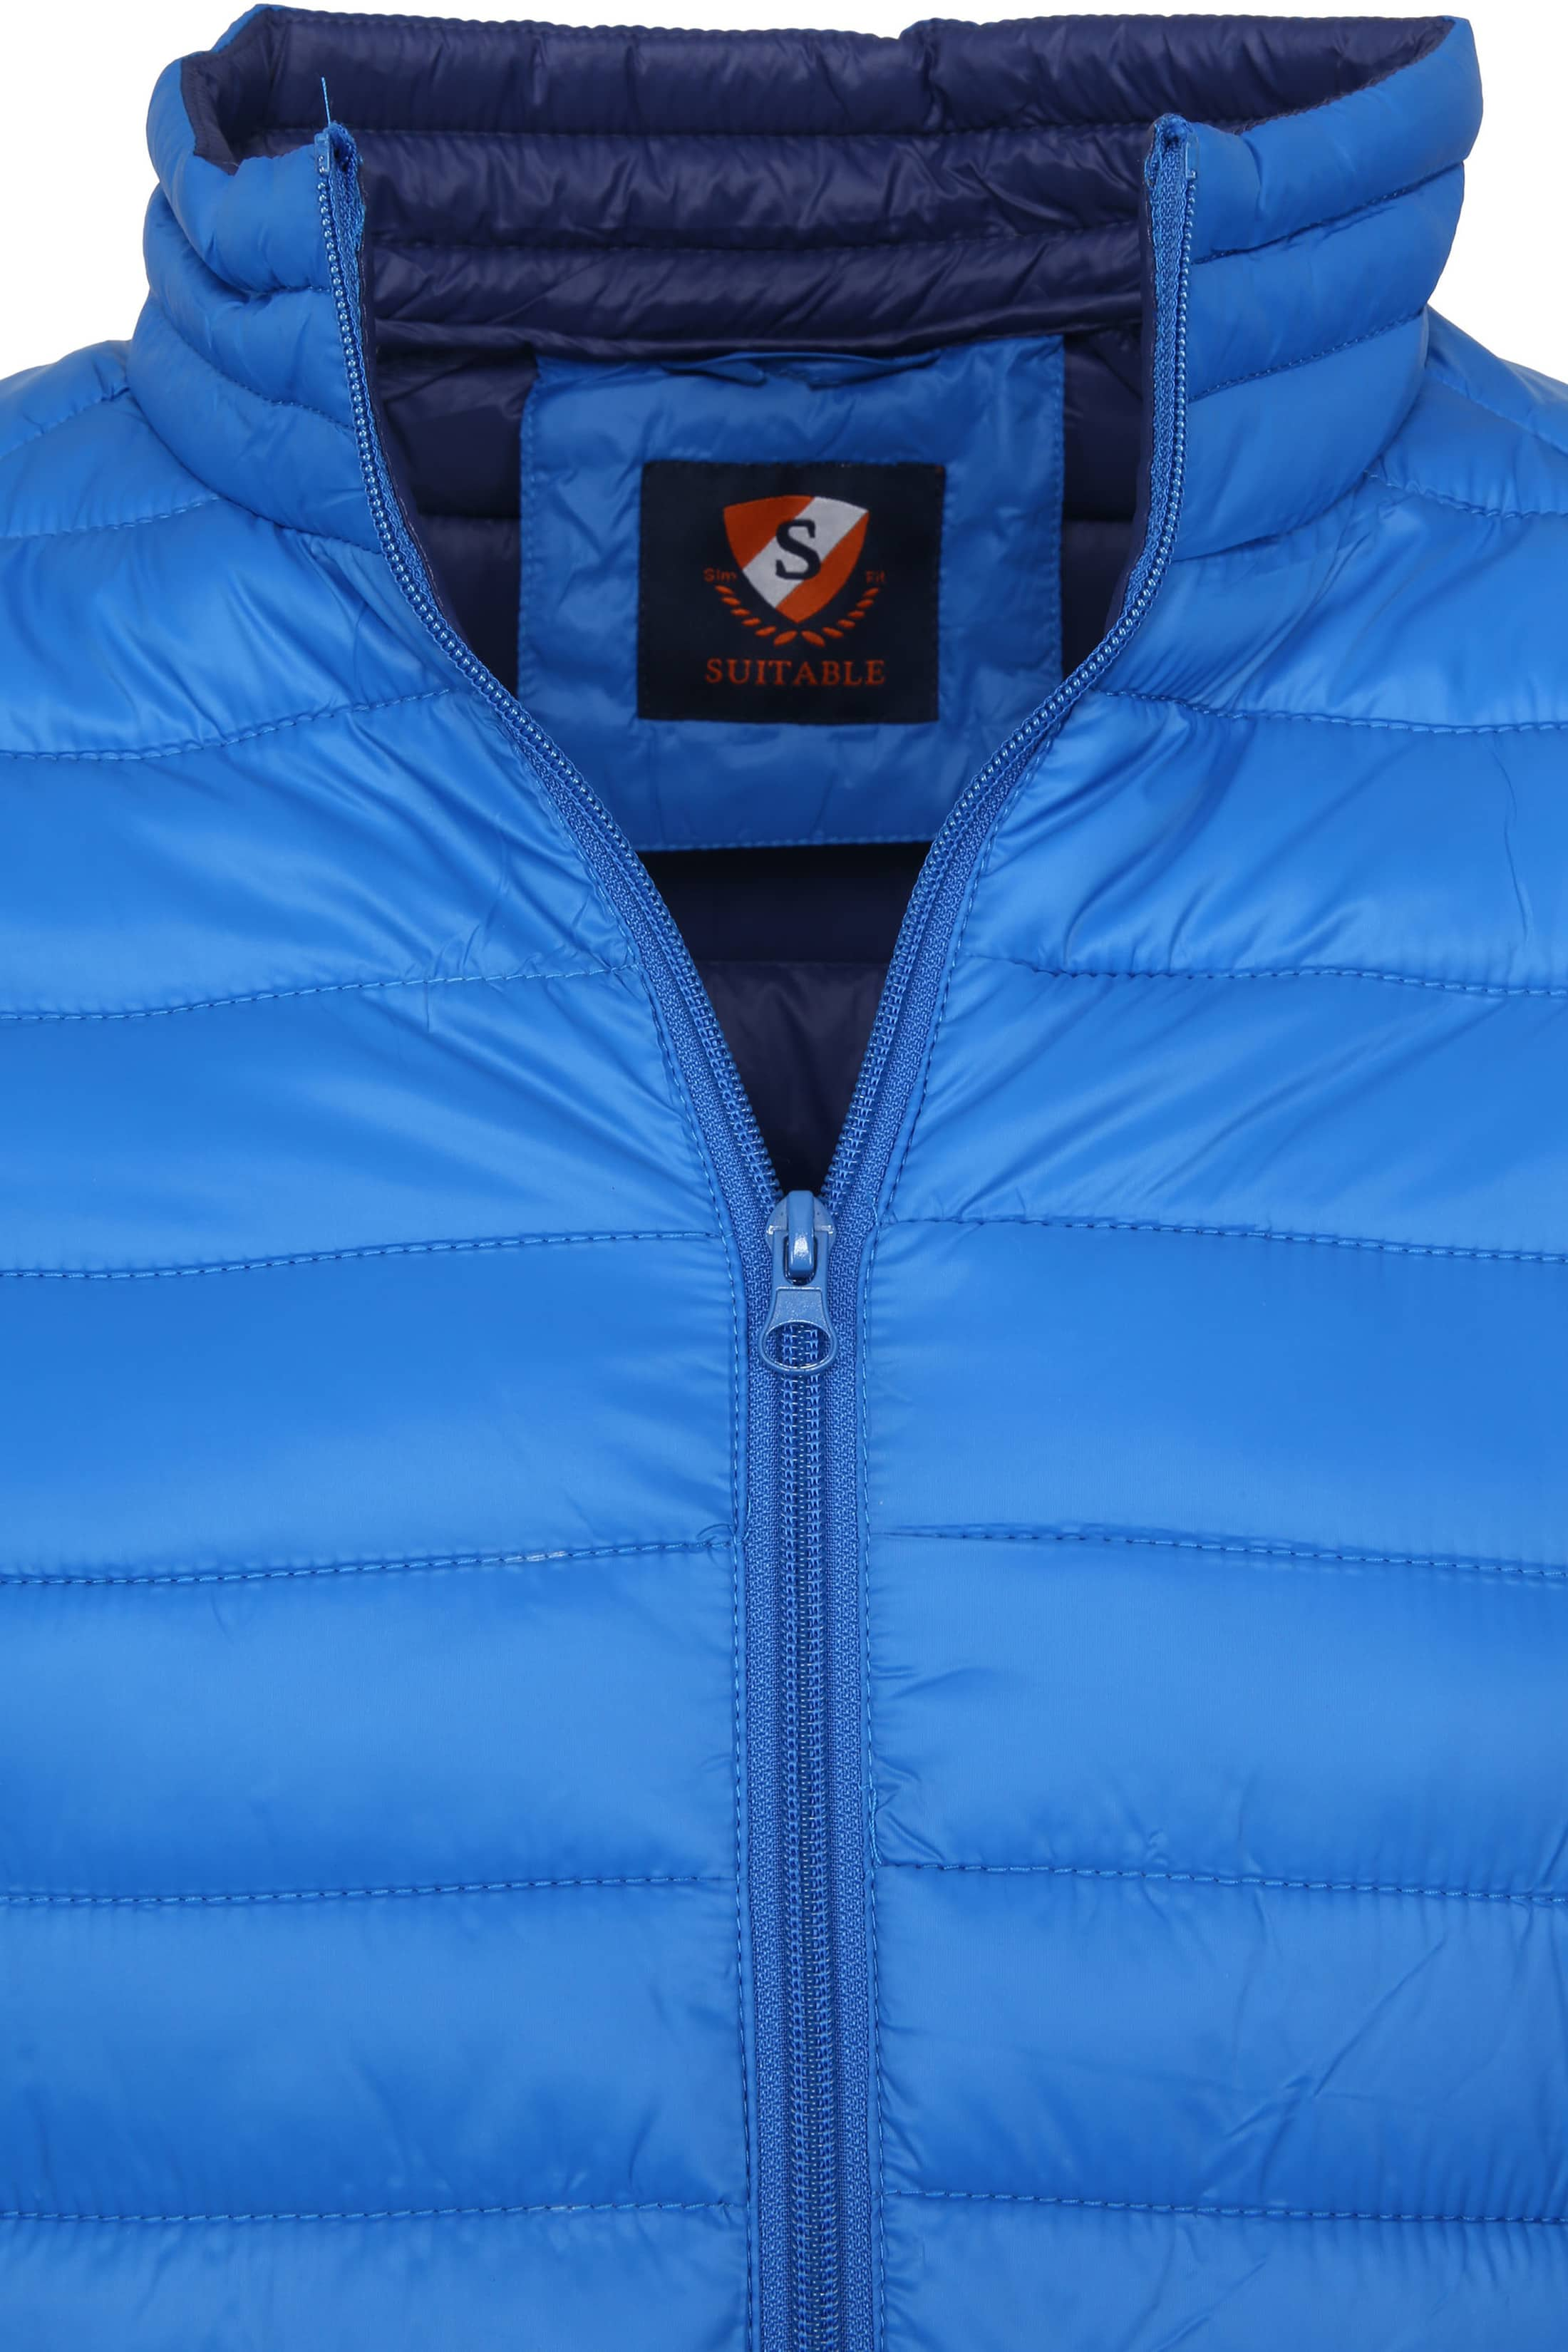 Suitable Jon PCK Jacket Blue foto 1